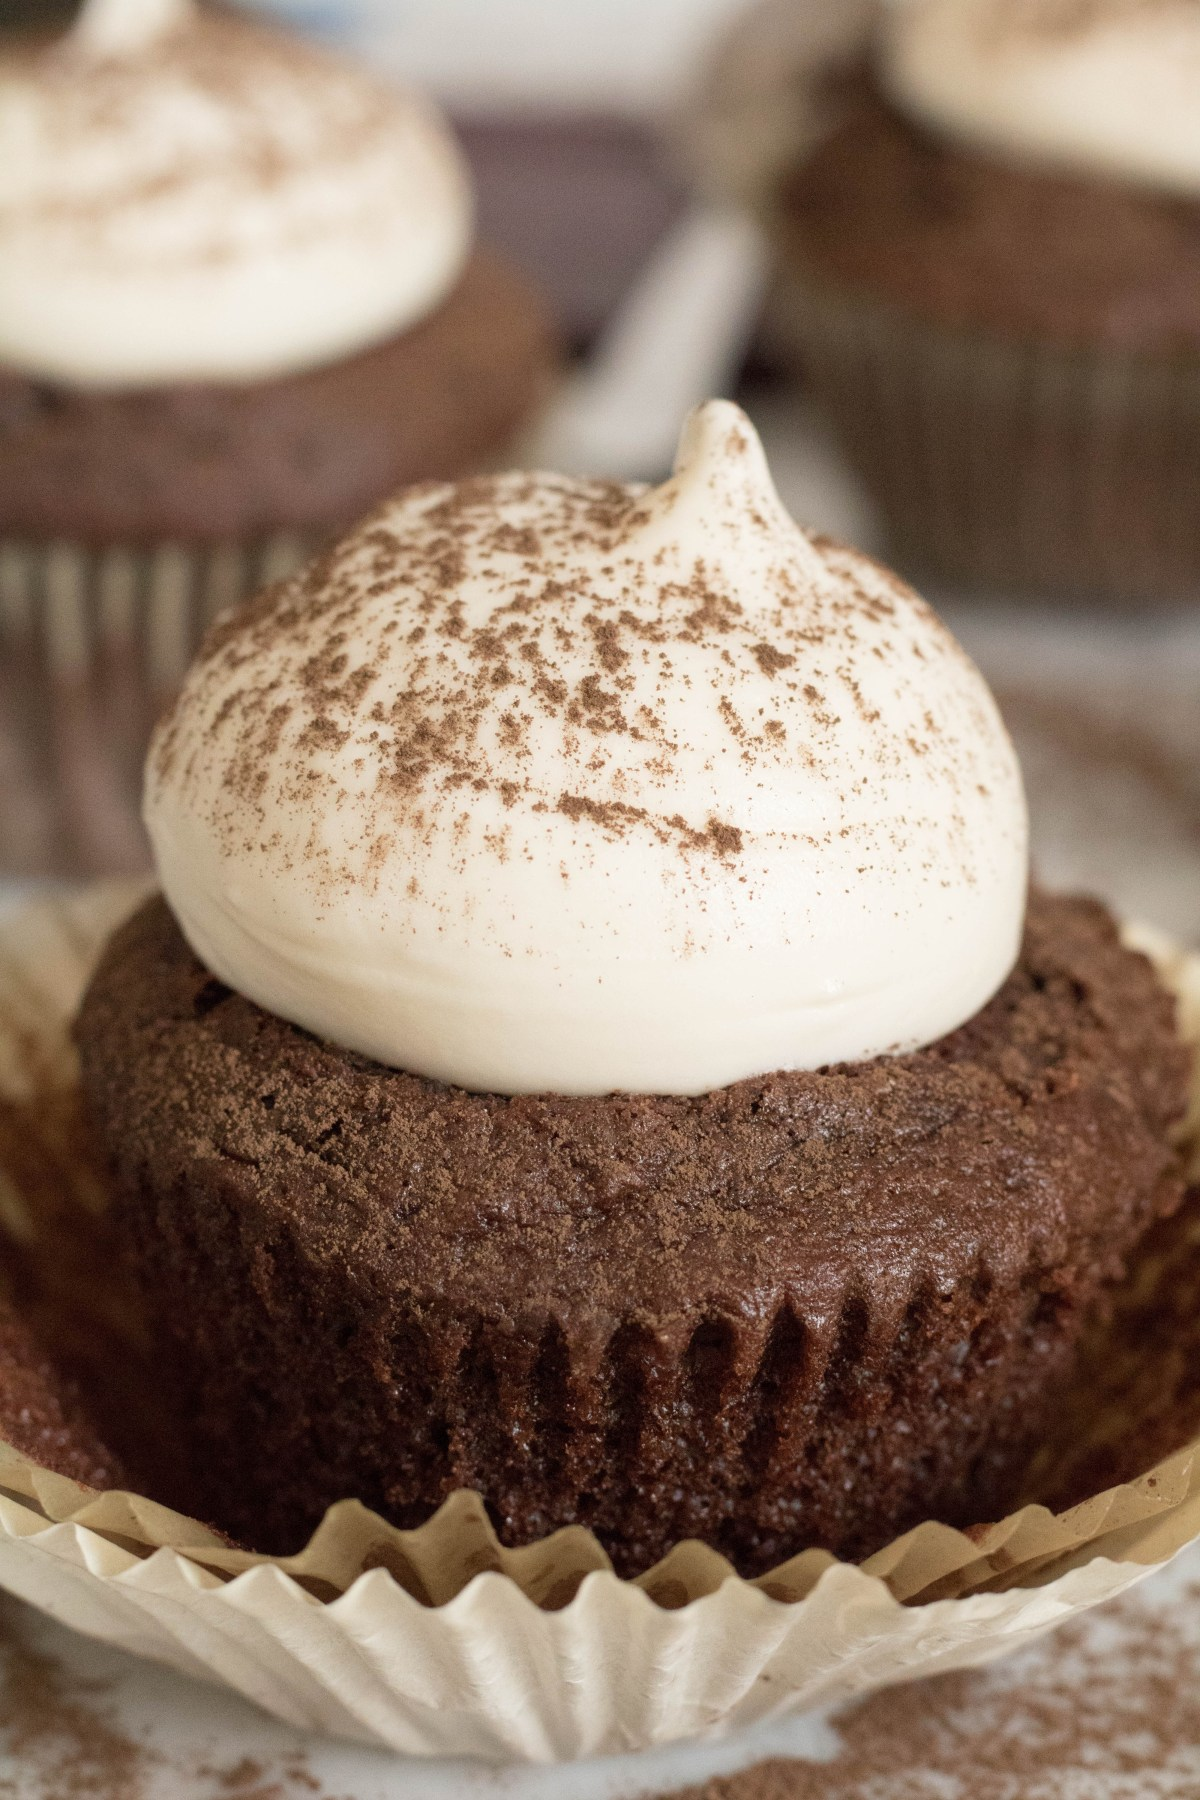 Cream cheese frosting on chocolate cupcake